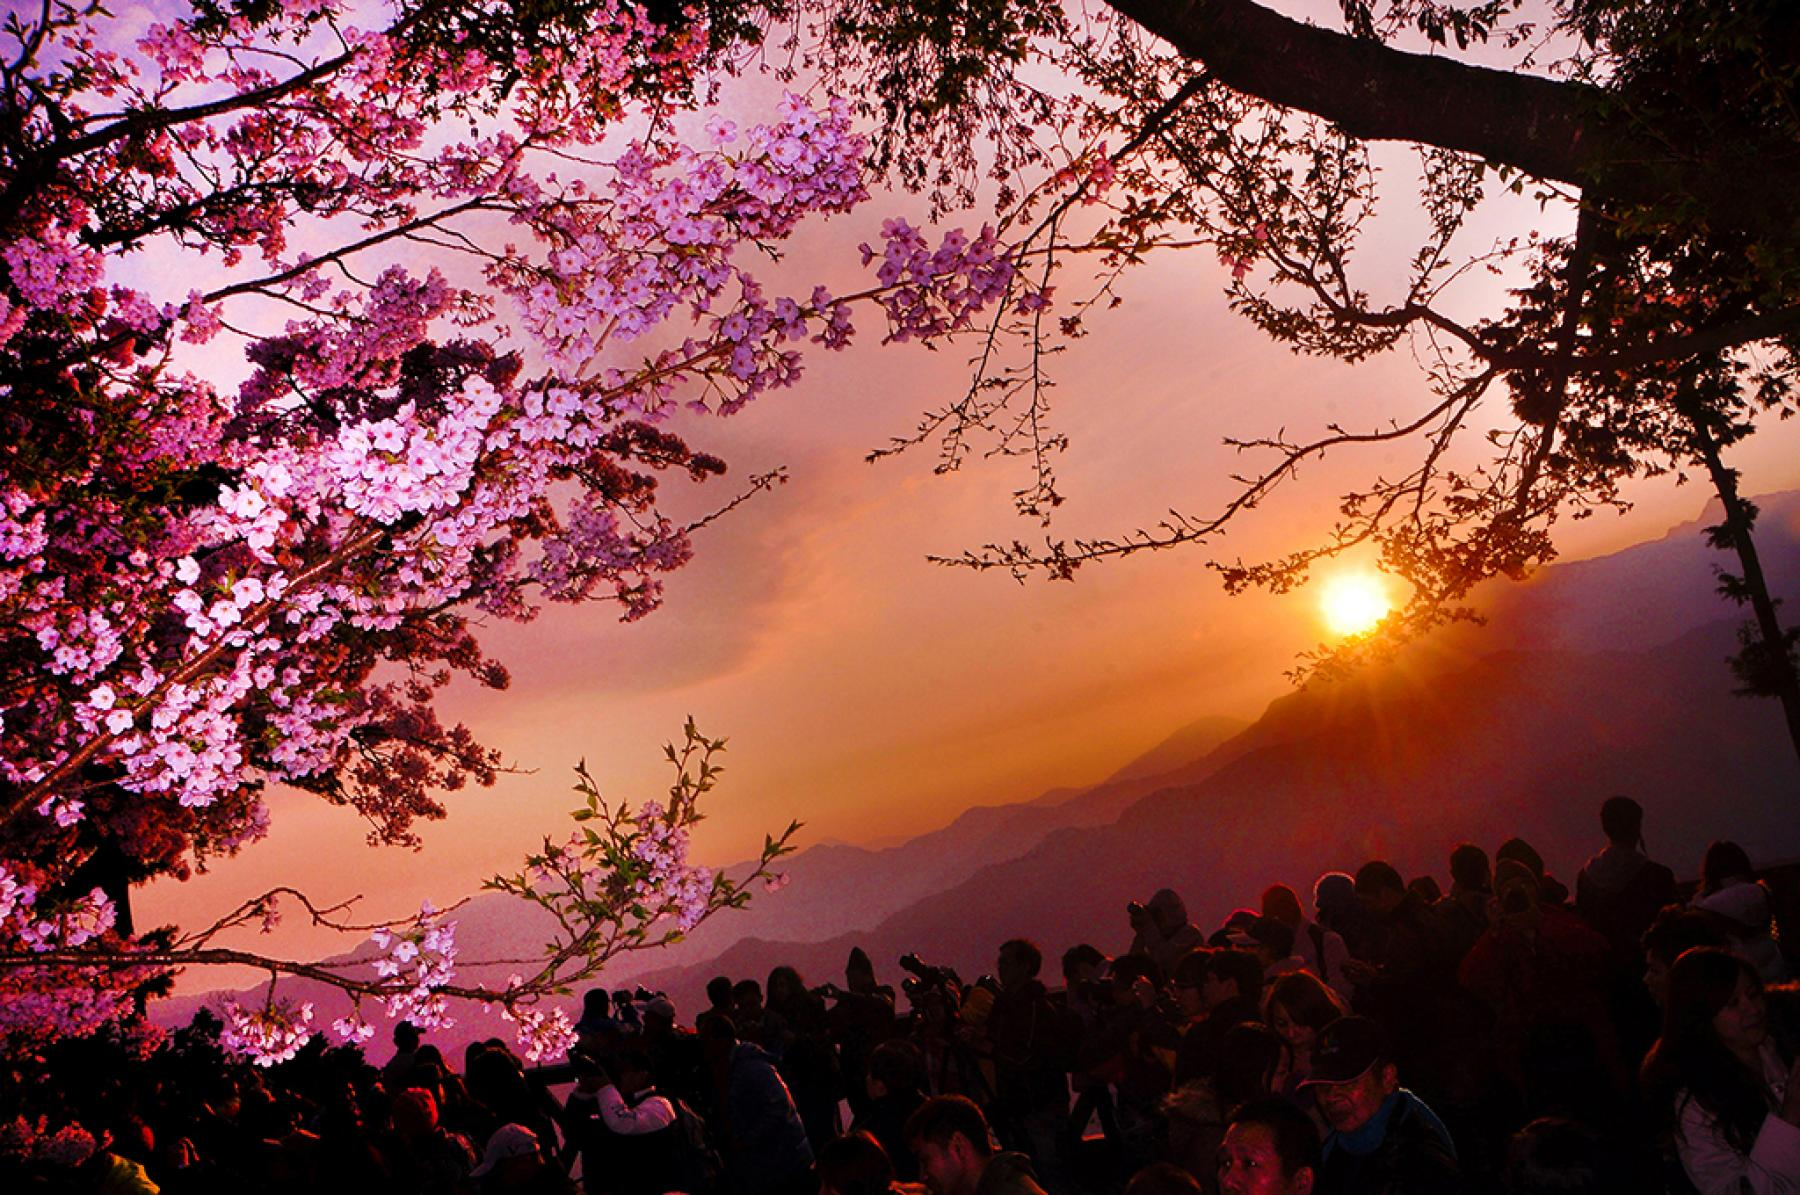 Let's explore the beauties of Taiwan starting at Taiwan